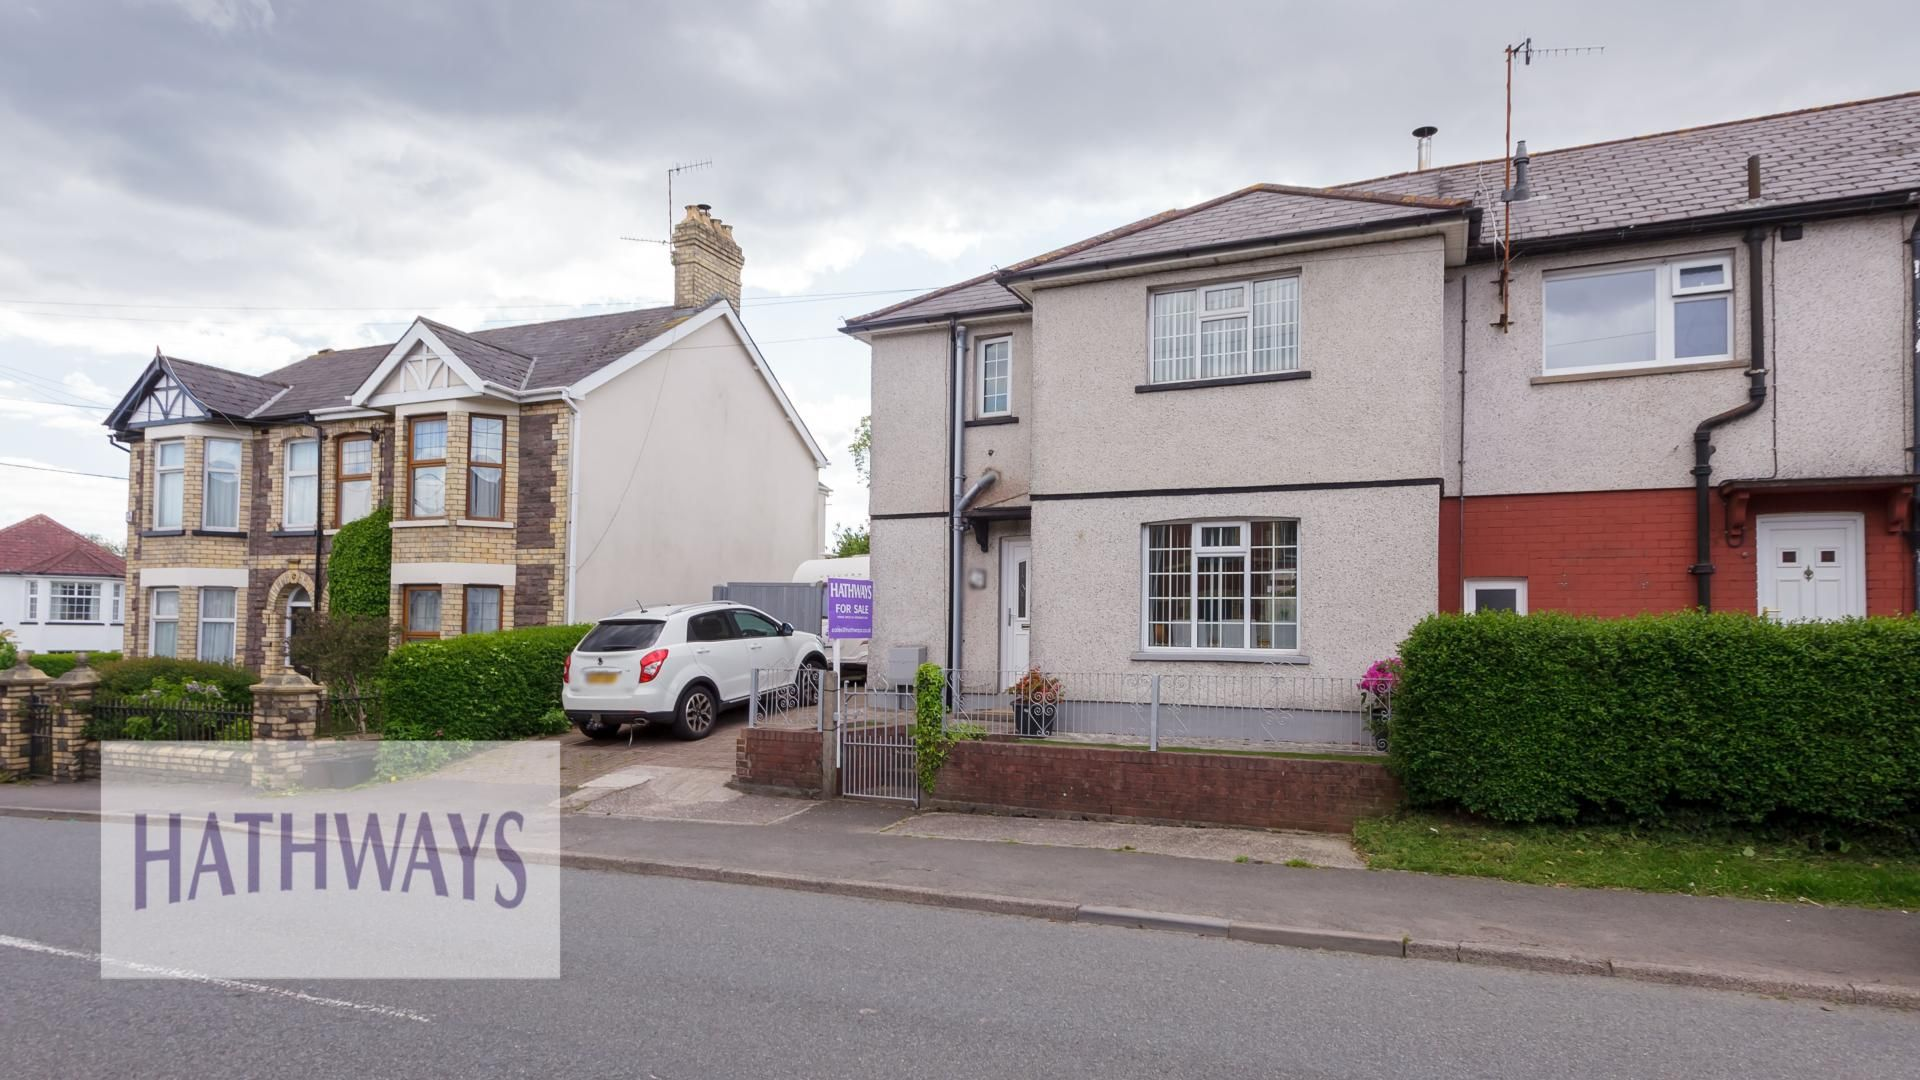 3 bed house for sale in Lowlands Road, NP44